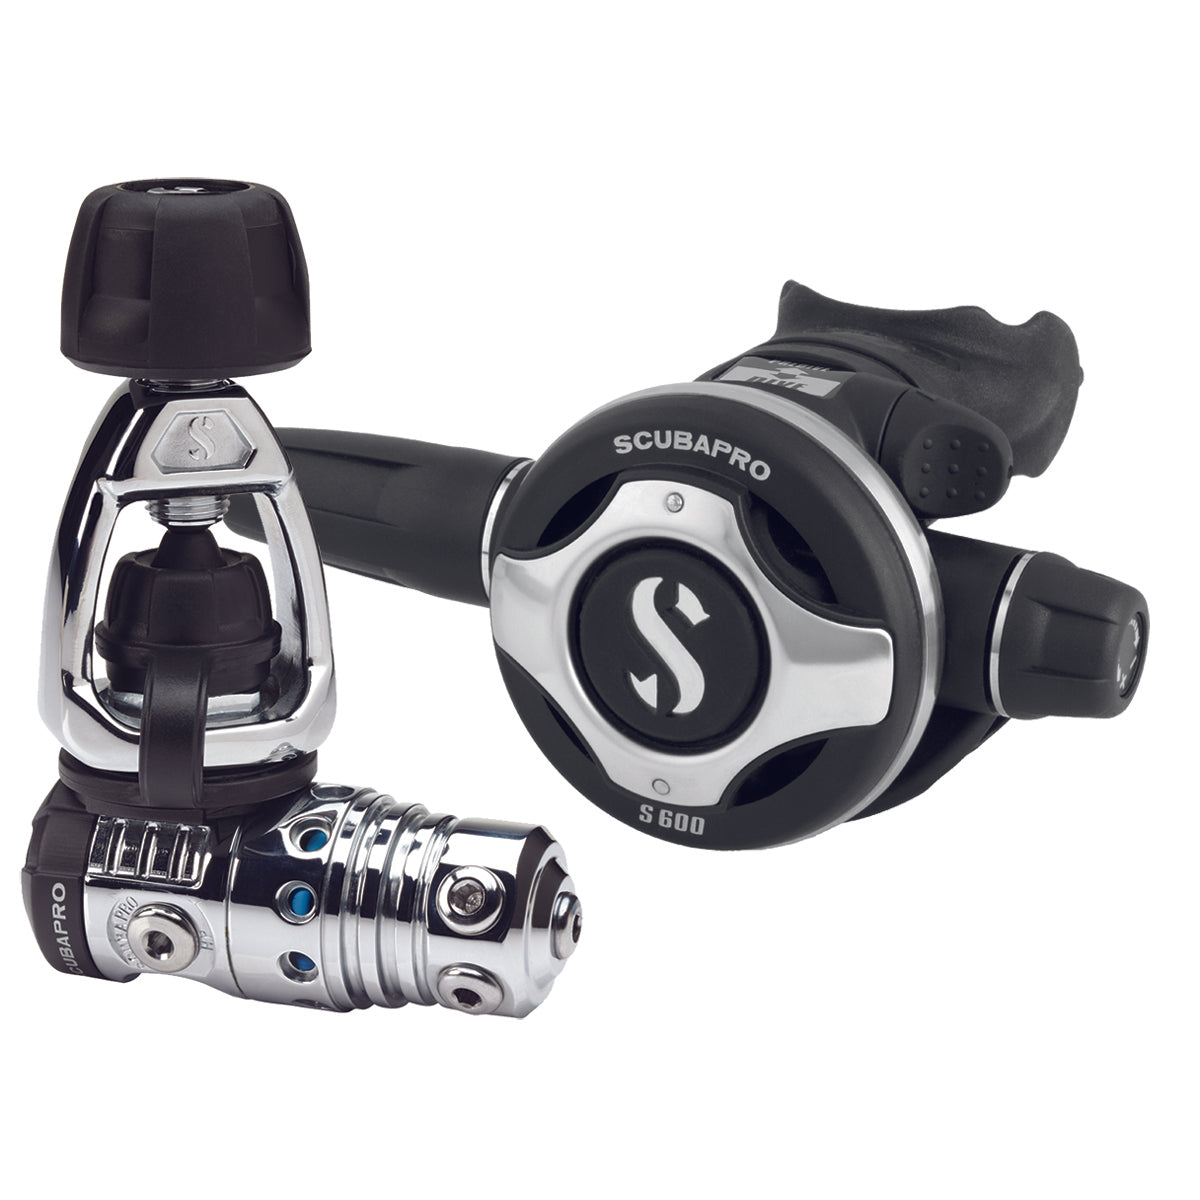 MK25 EVO/S600 DIVE REGULATOR SYSTEM, INT